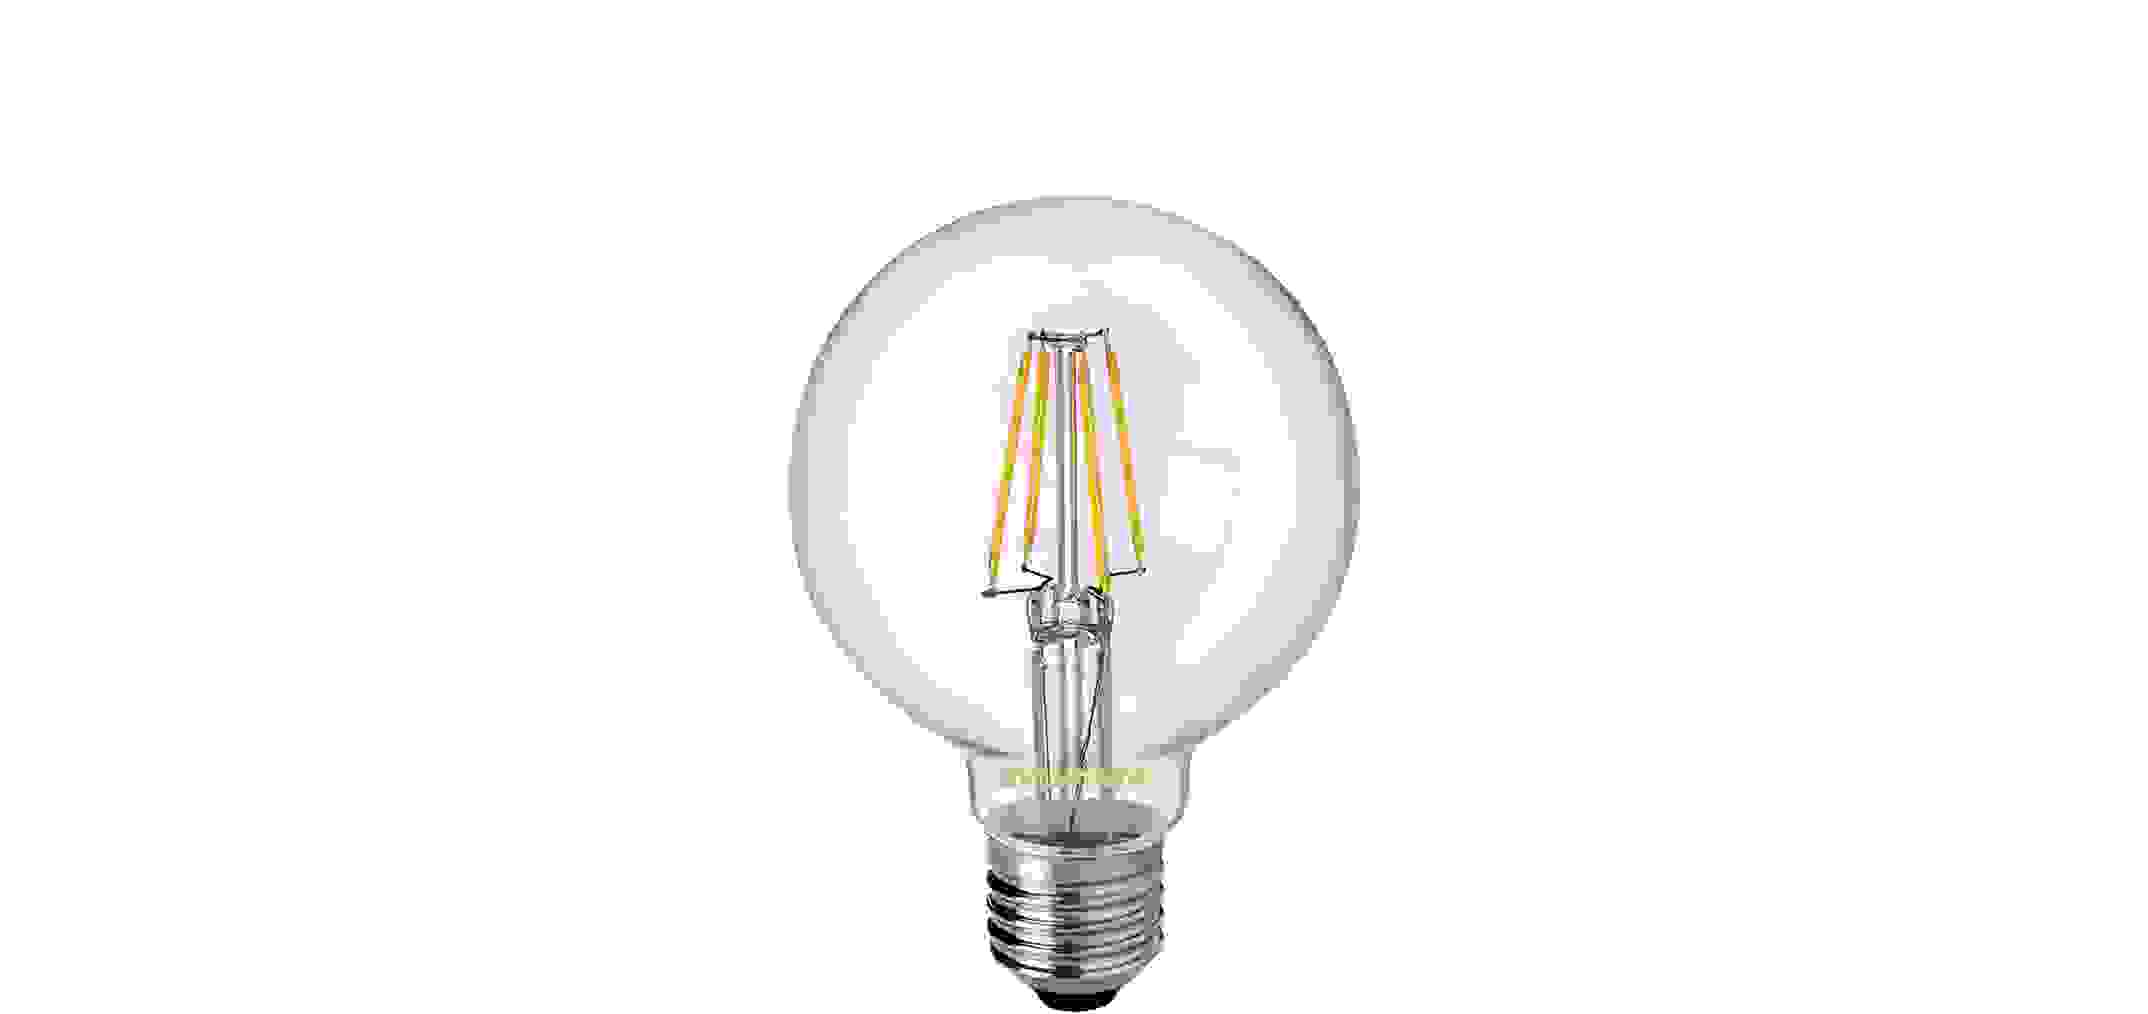 Toledo Filament LED Birne G80 5W E27 warmweiß